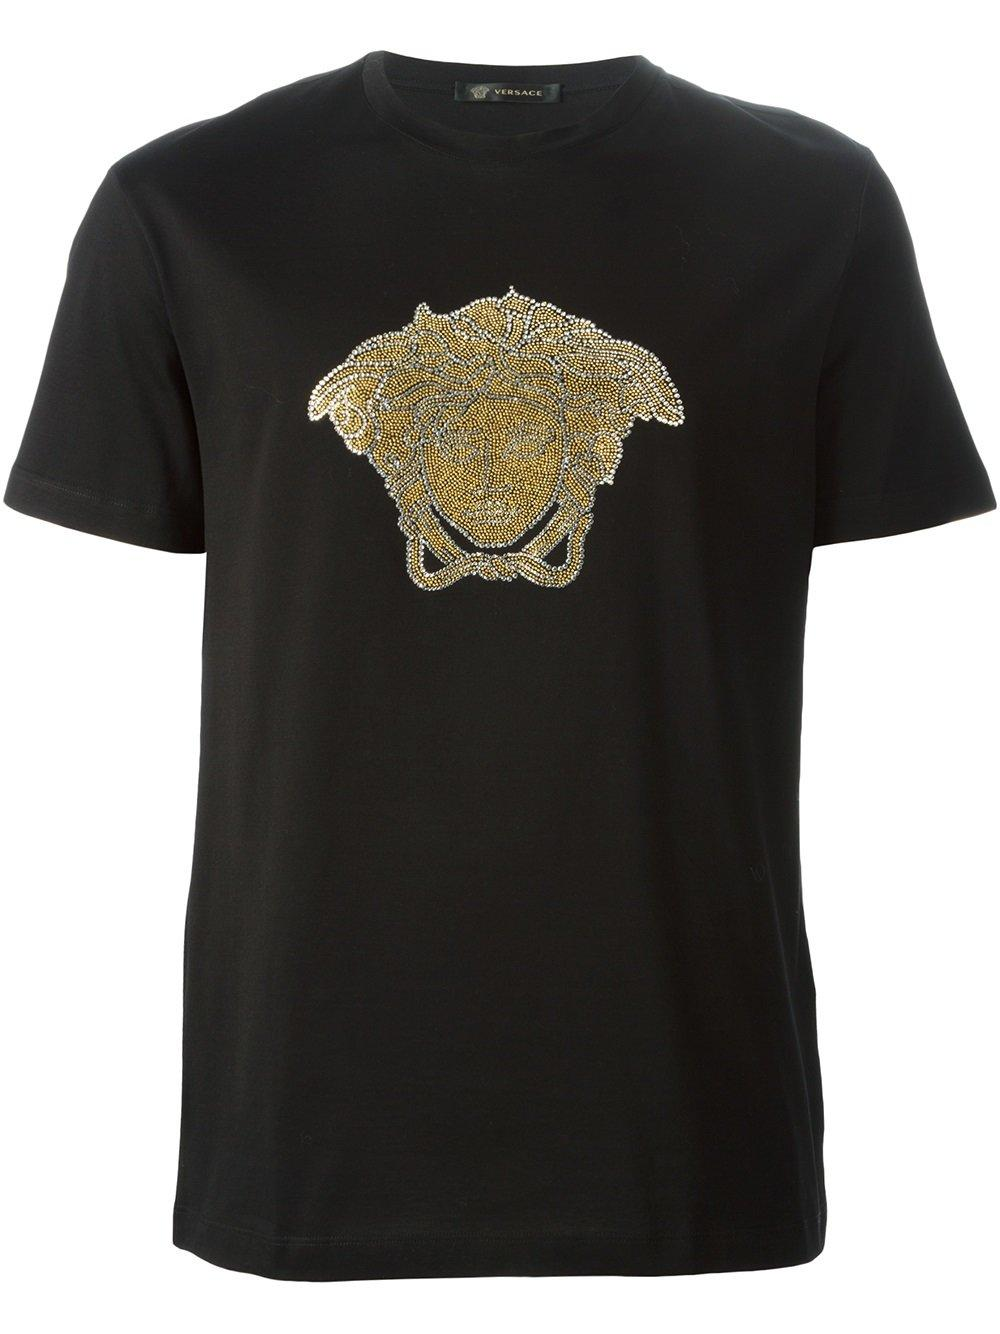 lyst versace medusa t shirt in black for men. Black Bedroom Furniture Sets. Home Design Ideas